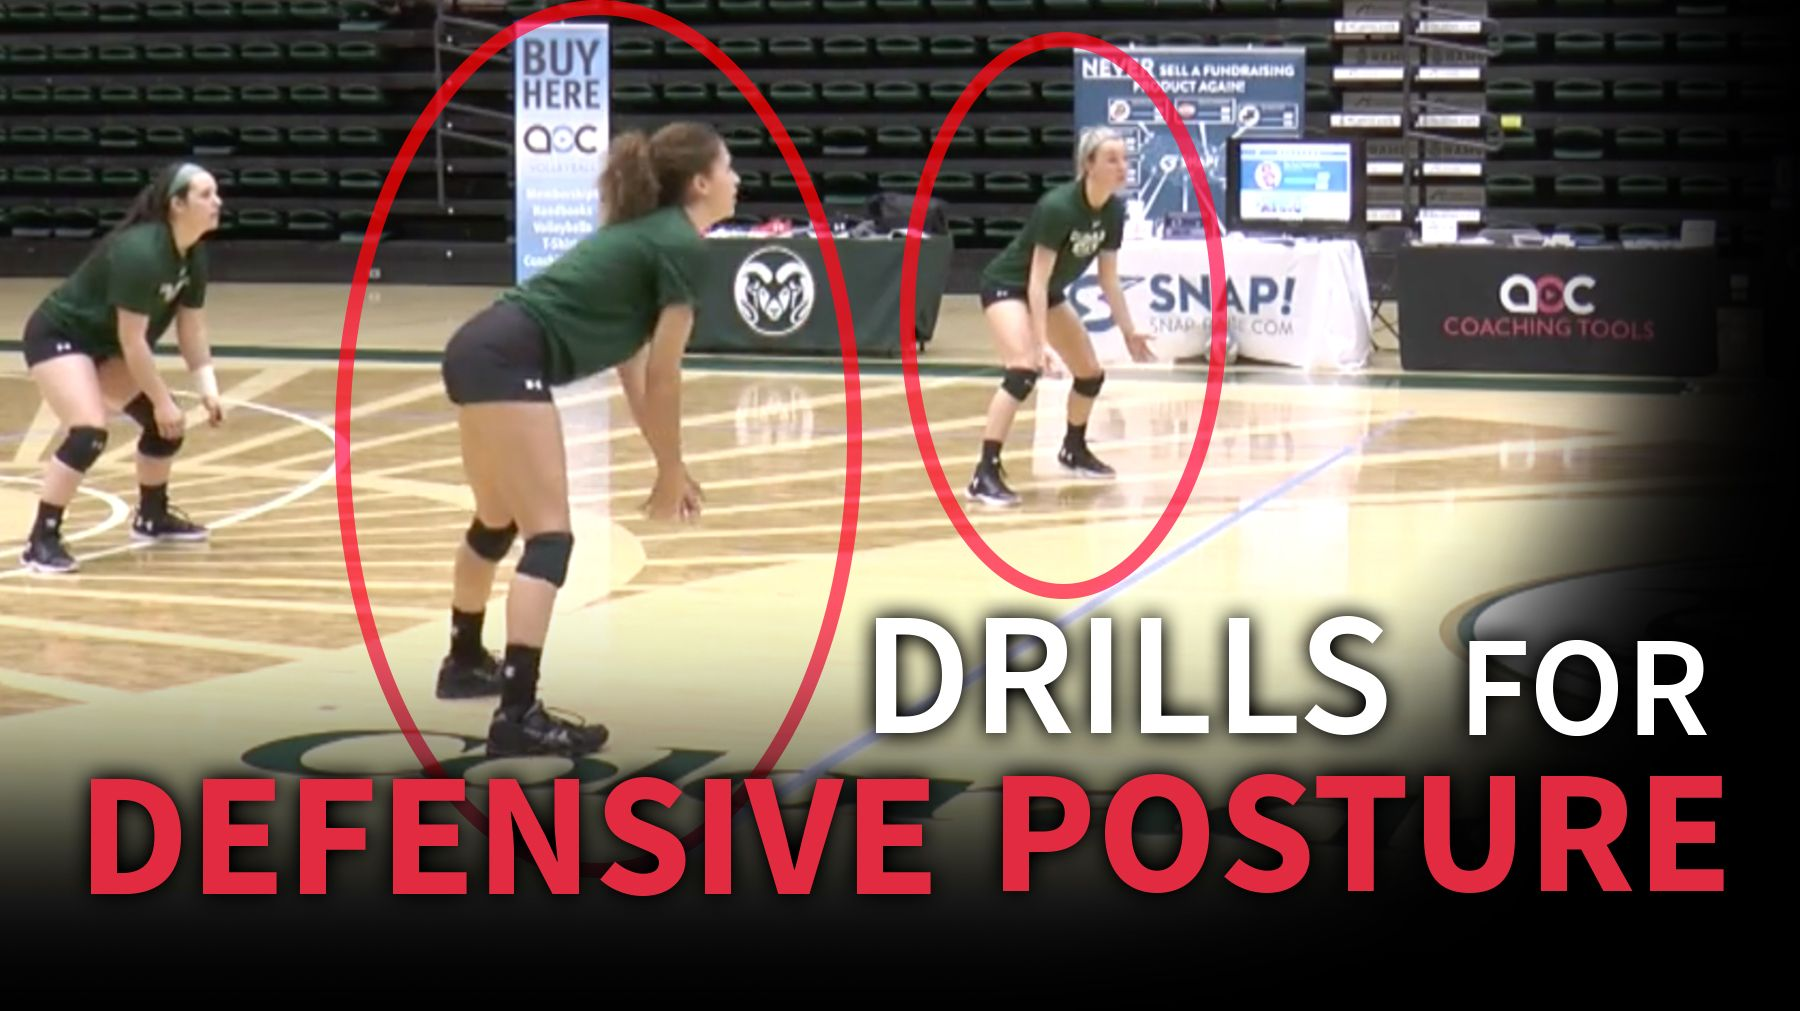 Two Drills For Developing Good Defensive Posture The Art Of Coaching Volleyball Coaching Volleyball Volleyball Training Kids Volleyball